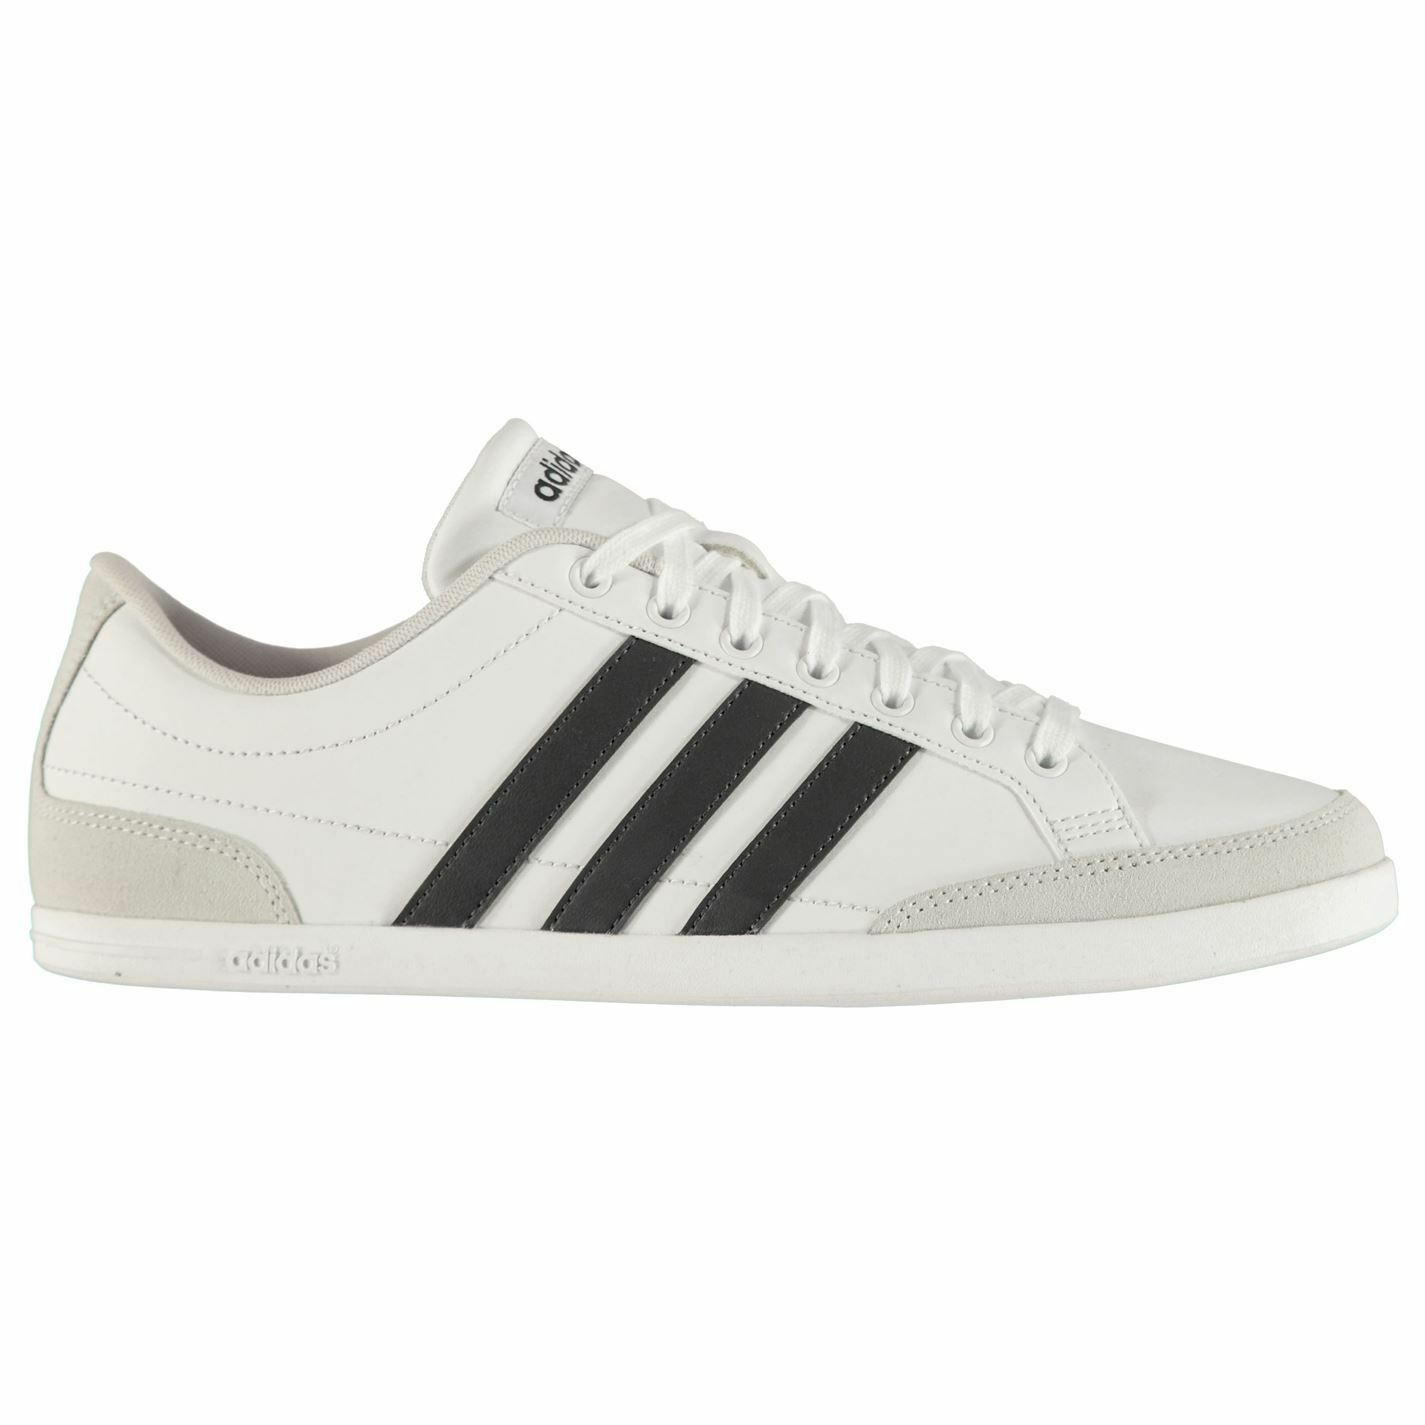 Adidas Mens Caflaire Lth Low Trainers